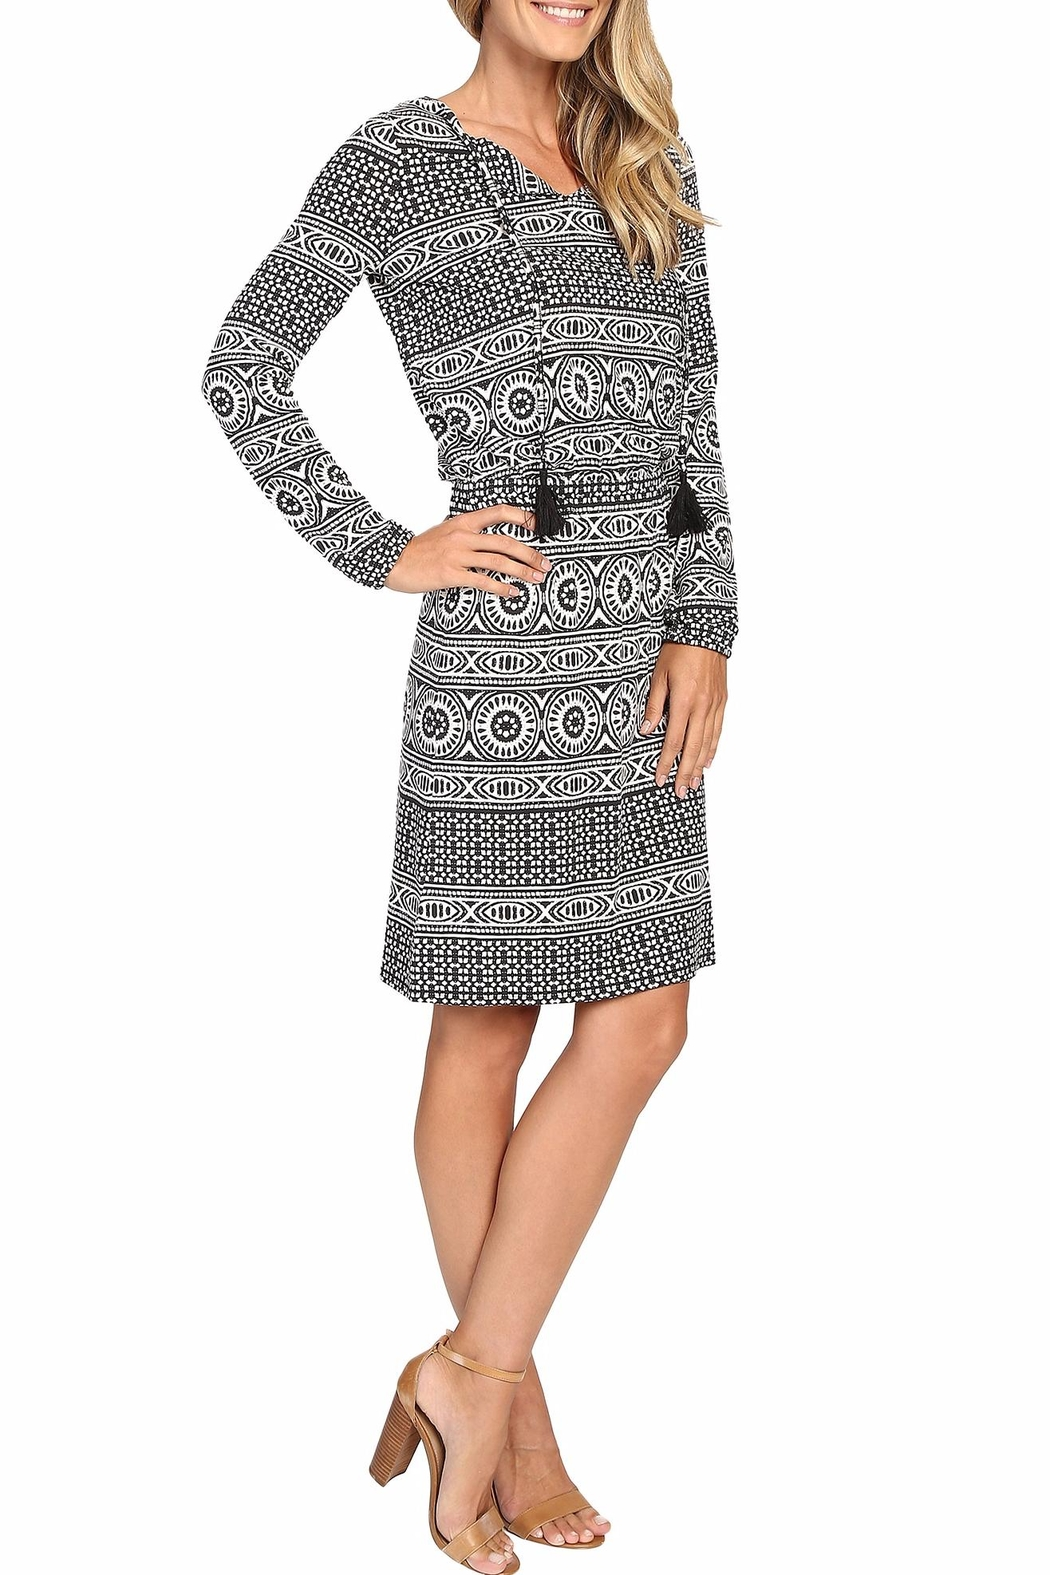 Tommy Bahama Geo Relief Short Dress - Front Full Image